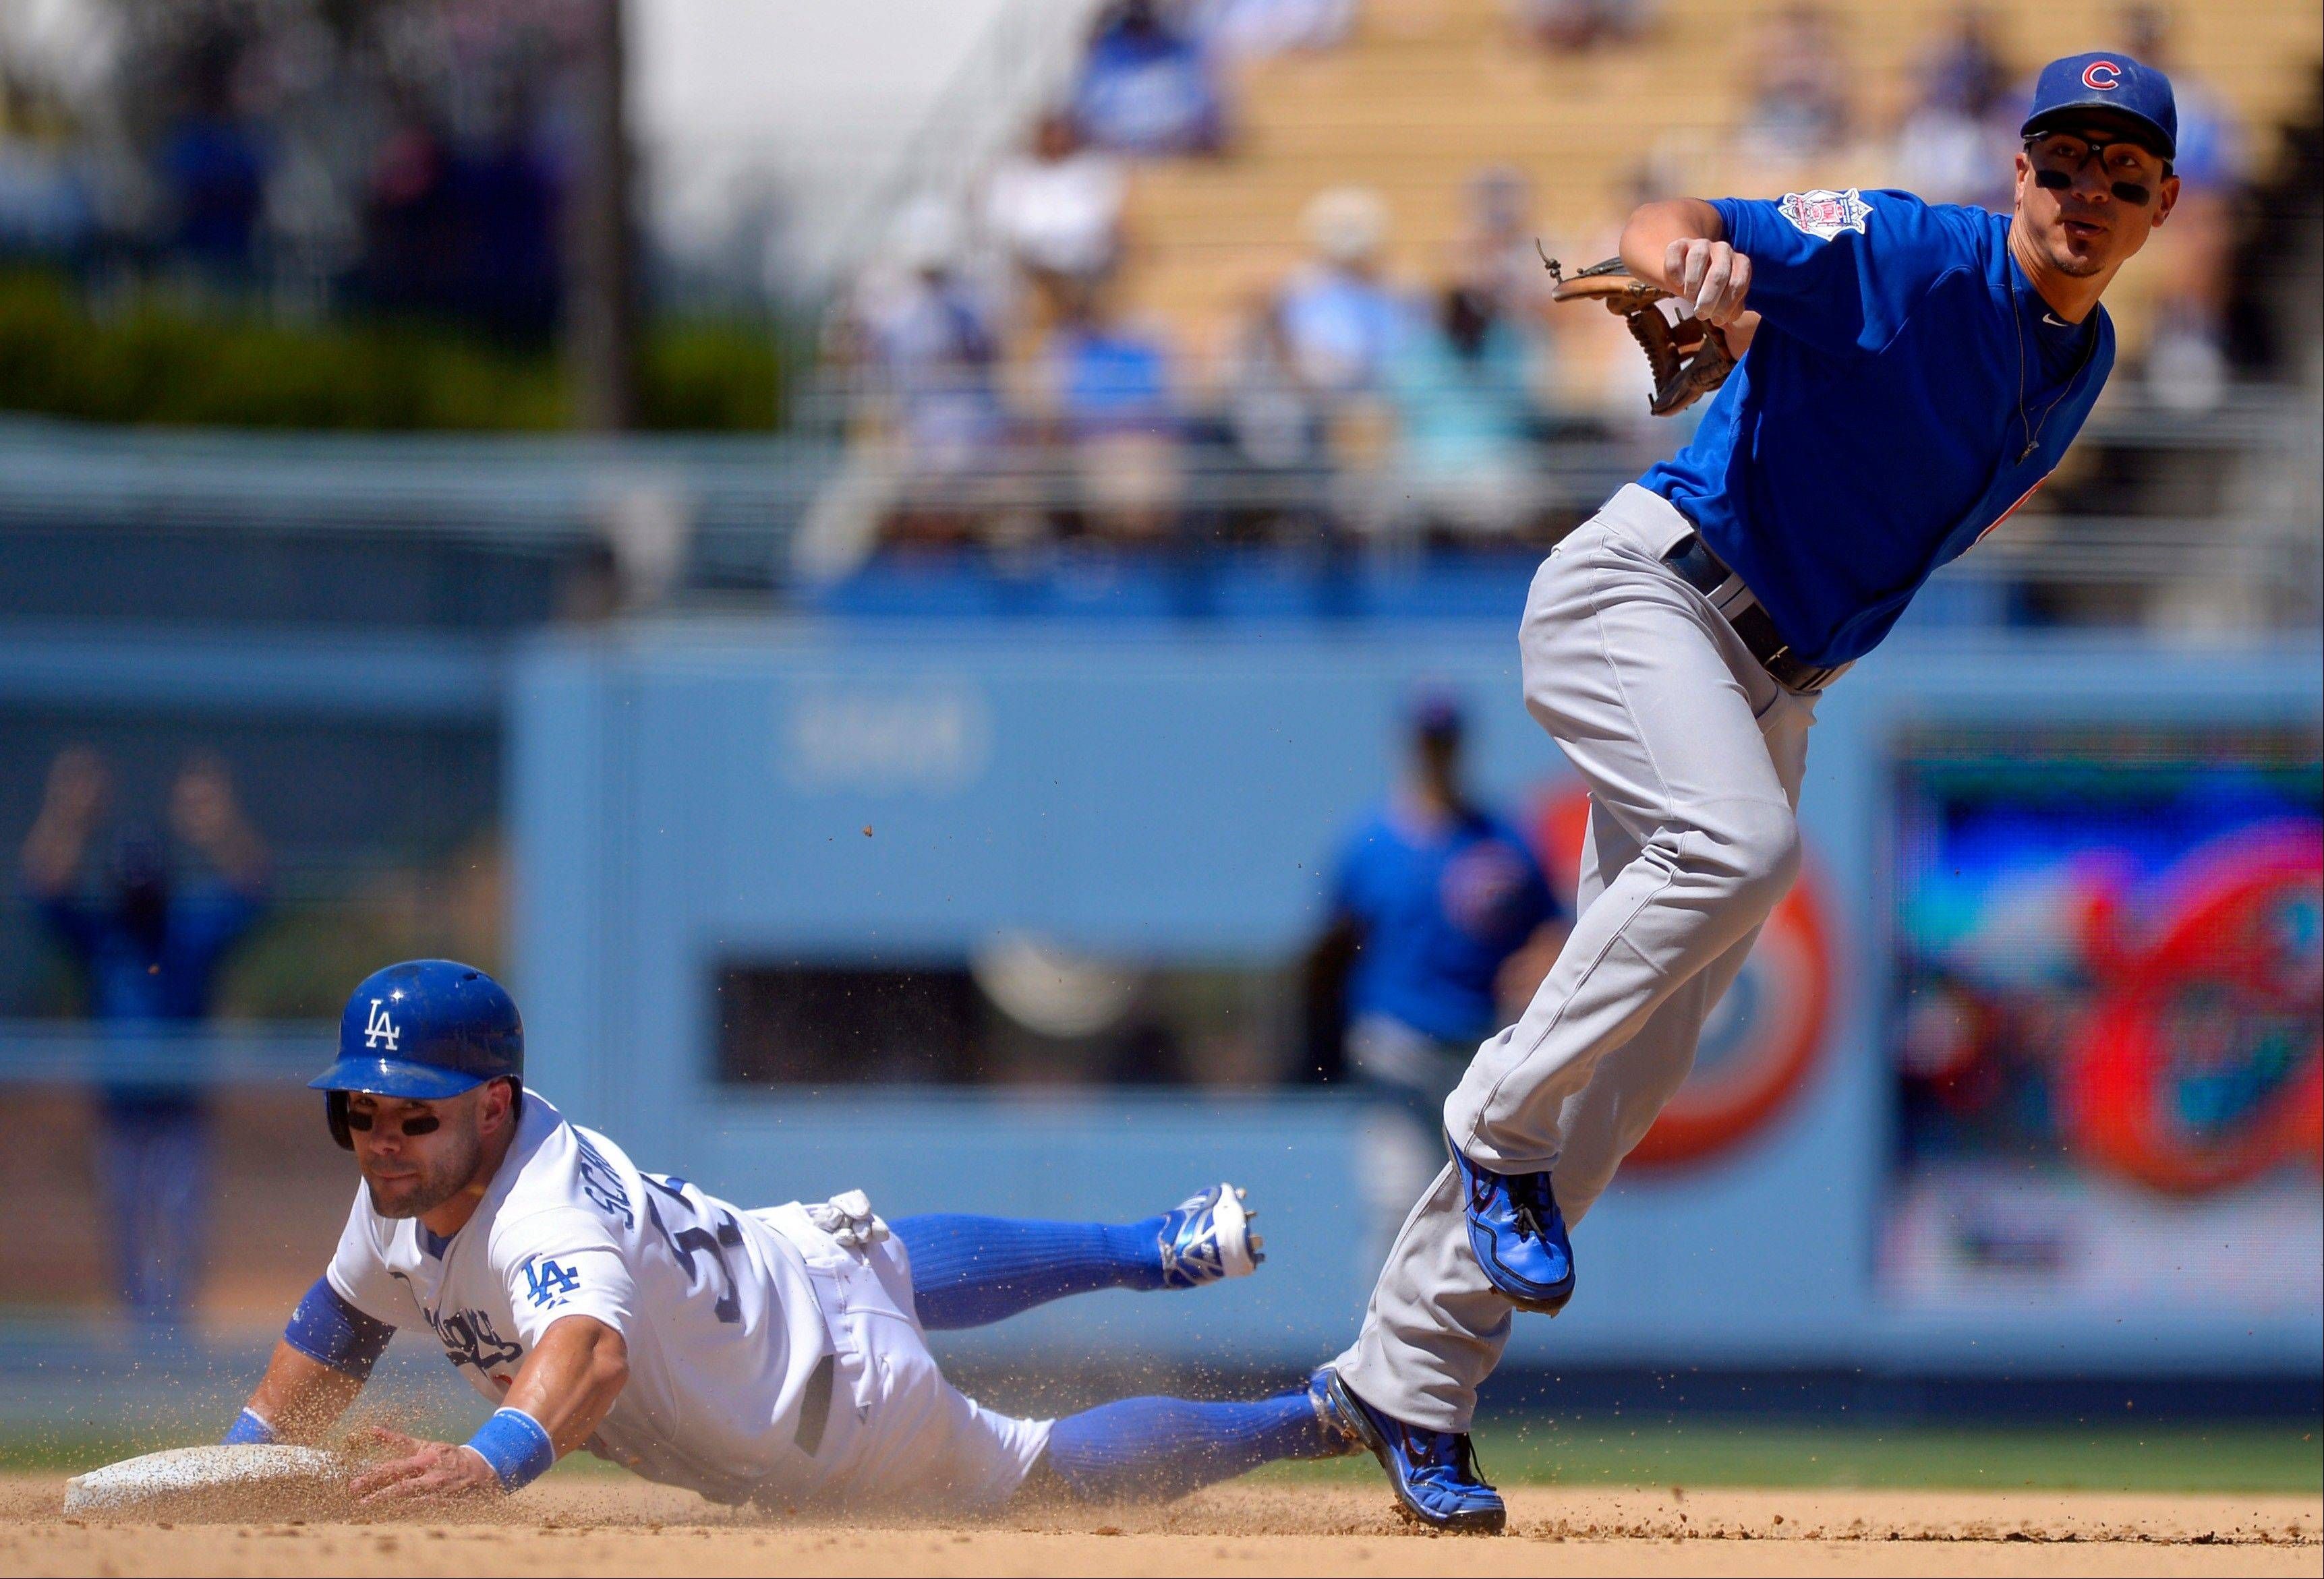 The Dodgers' Skip Schumaker, left, is forced out at second as Chicago Cubs second baseman Darwin Barney attempts to throw out Hanley Ramirez at first during Wednesday's game in Los Angeles. The Cubs lost 4-0.